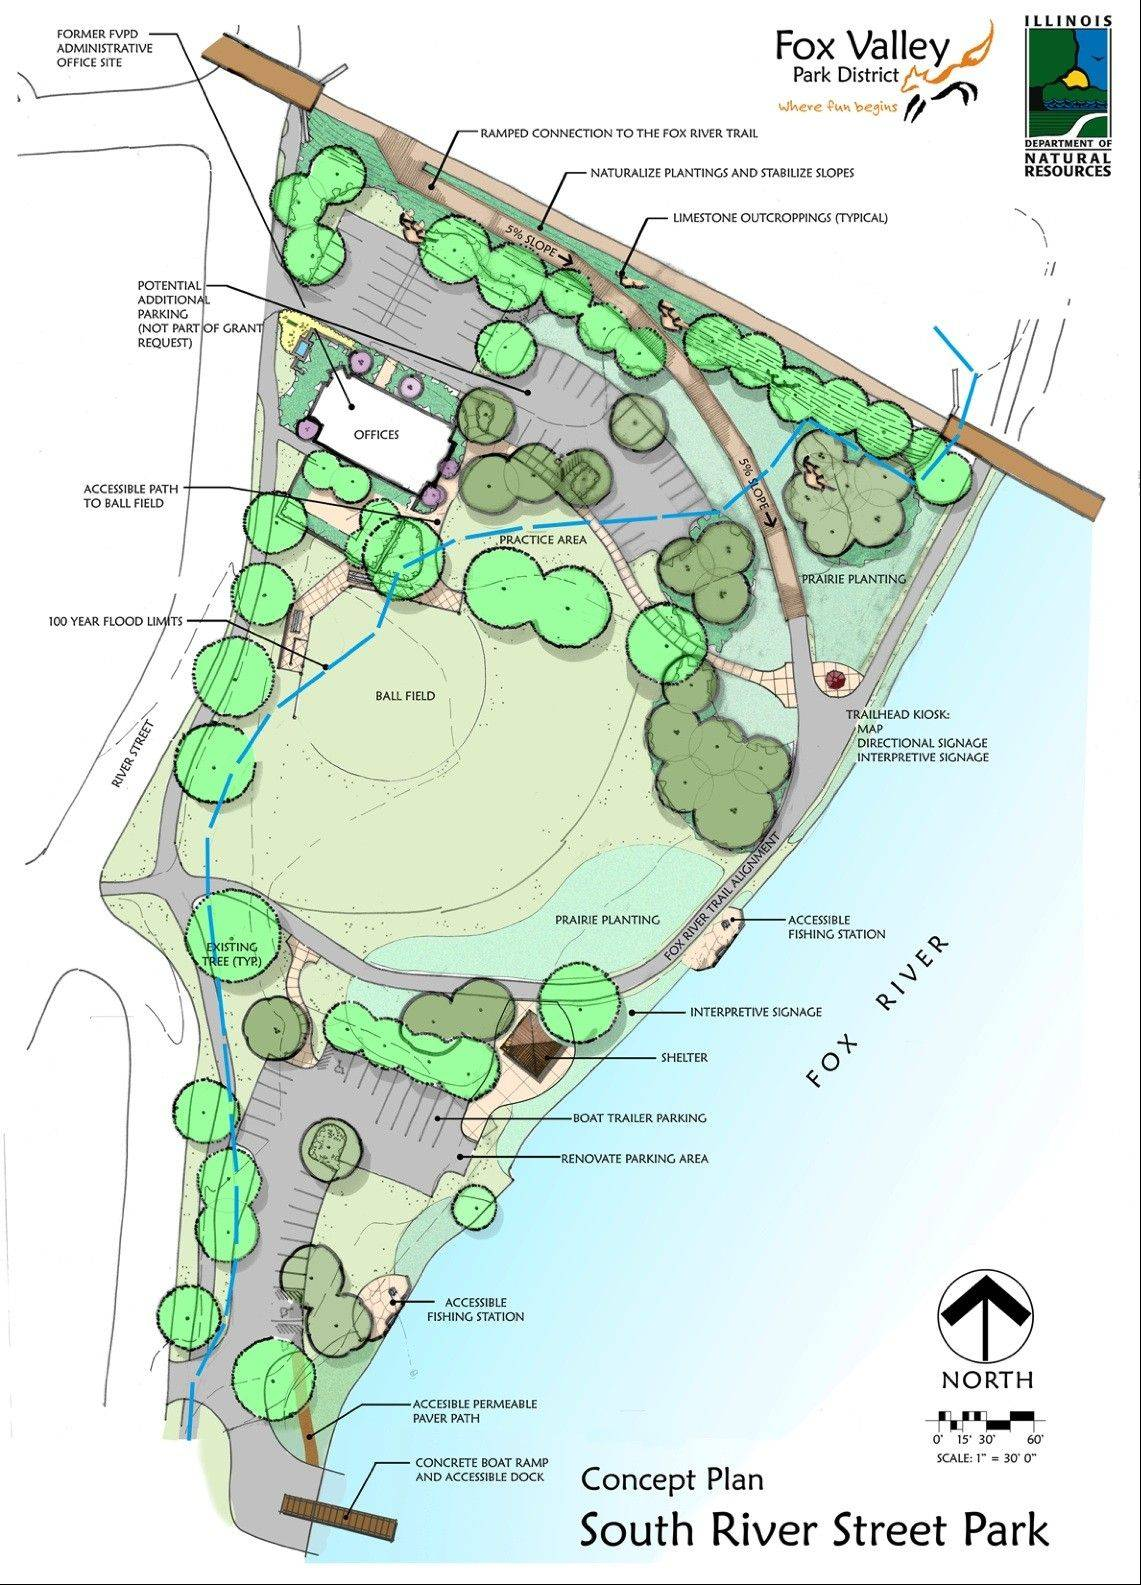 Trail connection at Fox River gets financial backing